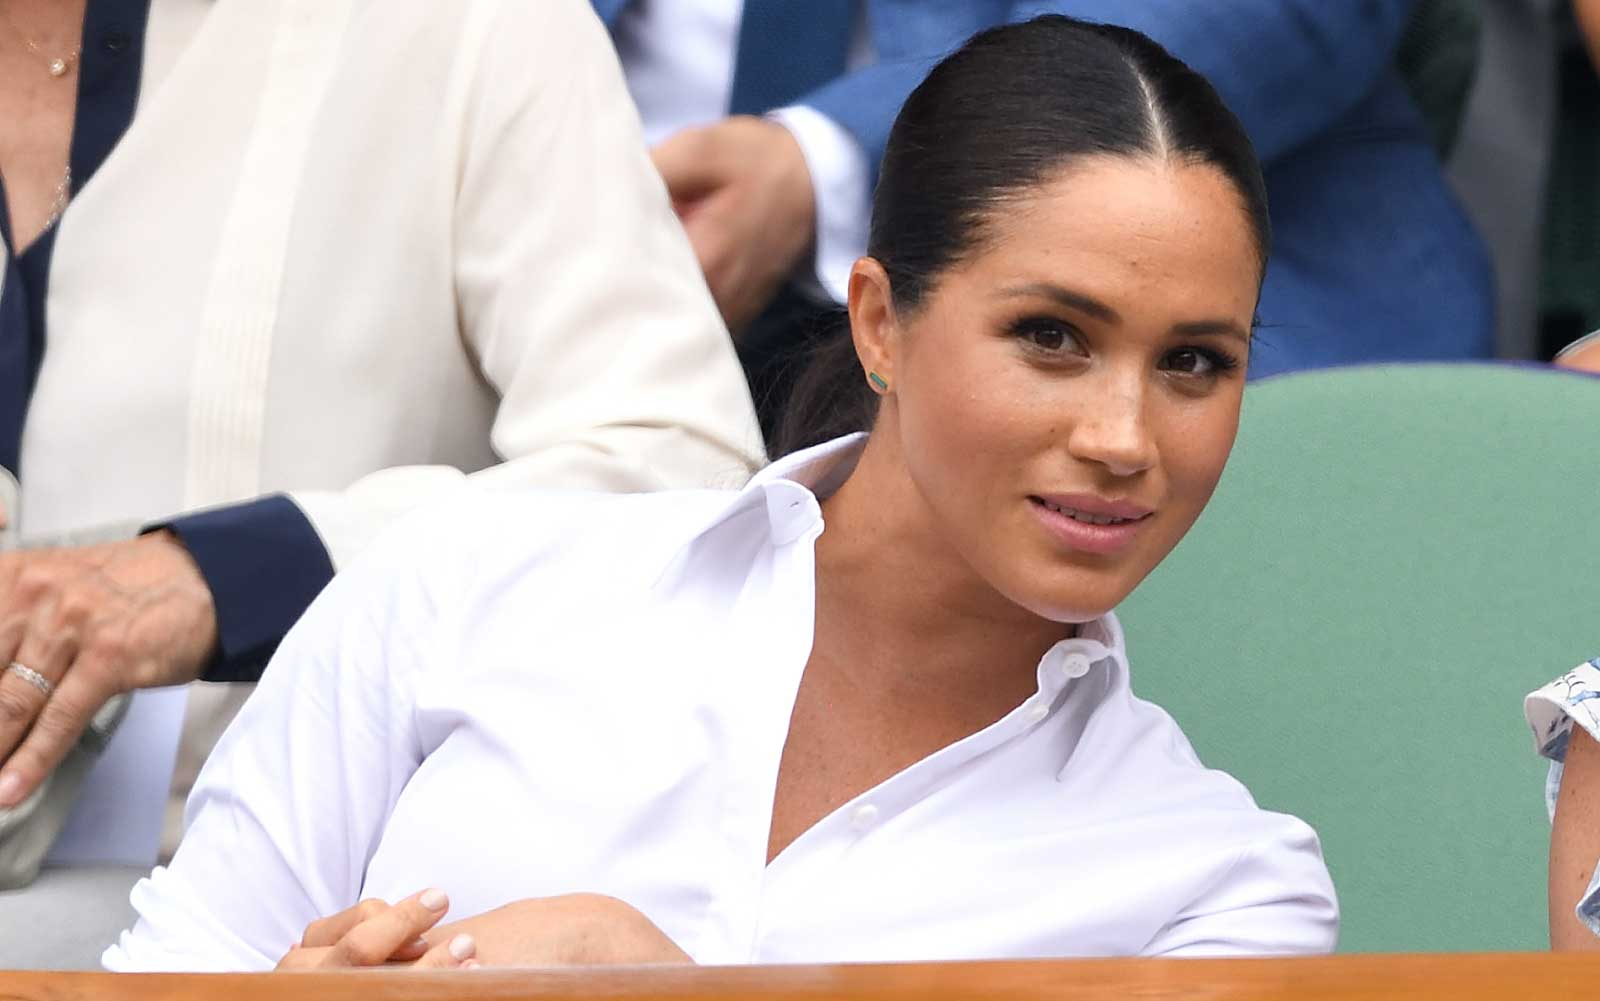 Meghan Markle Is Being Accused of Copying Her Vogue Cover From This Book She Helped Produce